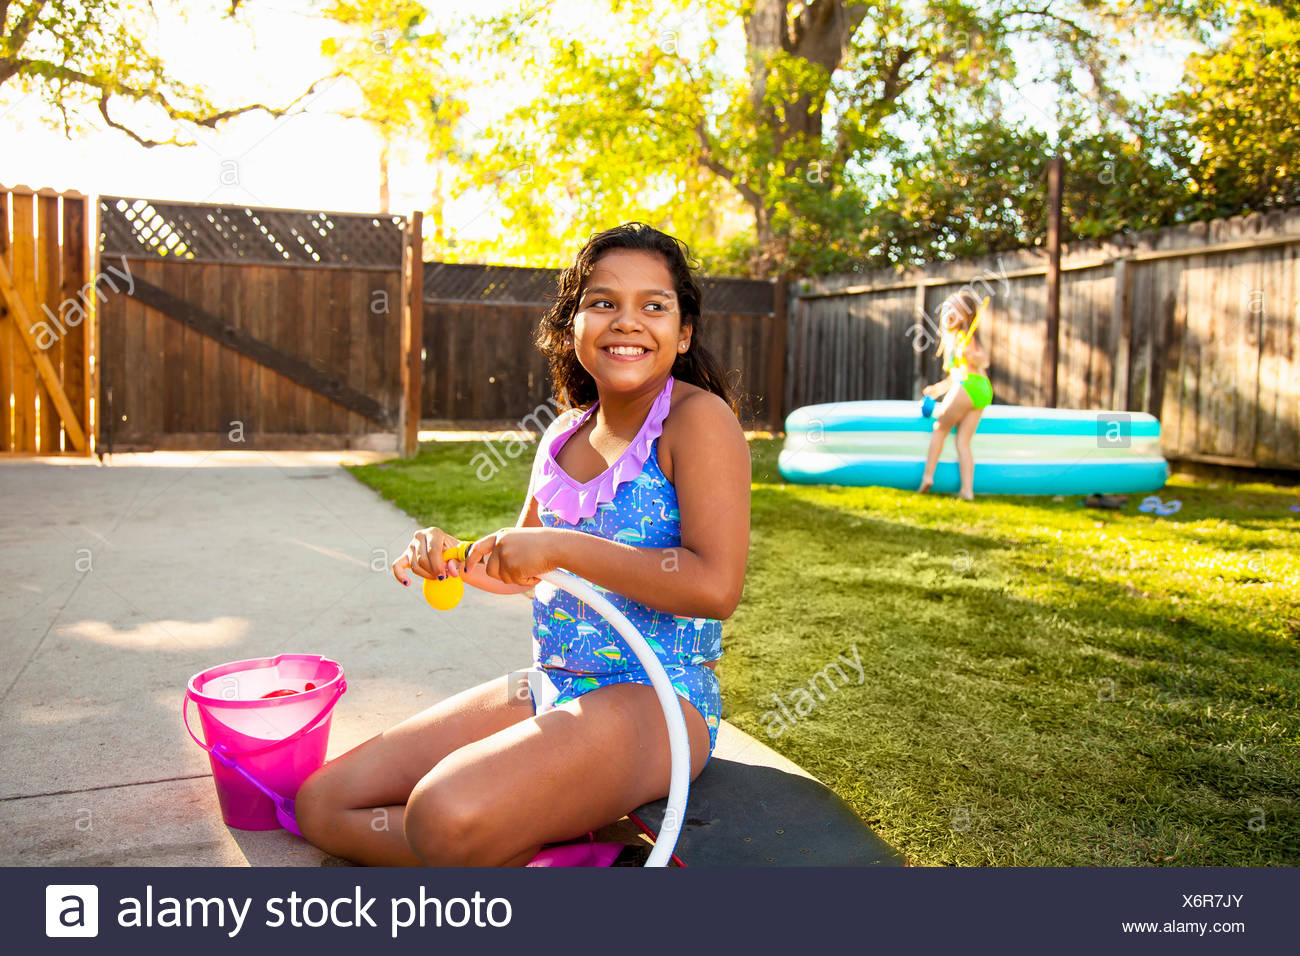 Girl filling balloon with water in garden - Stock Image